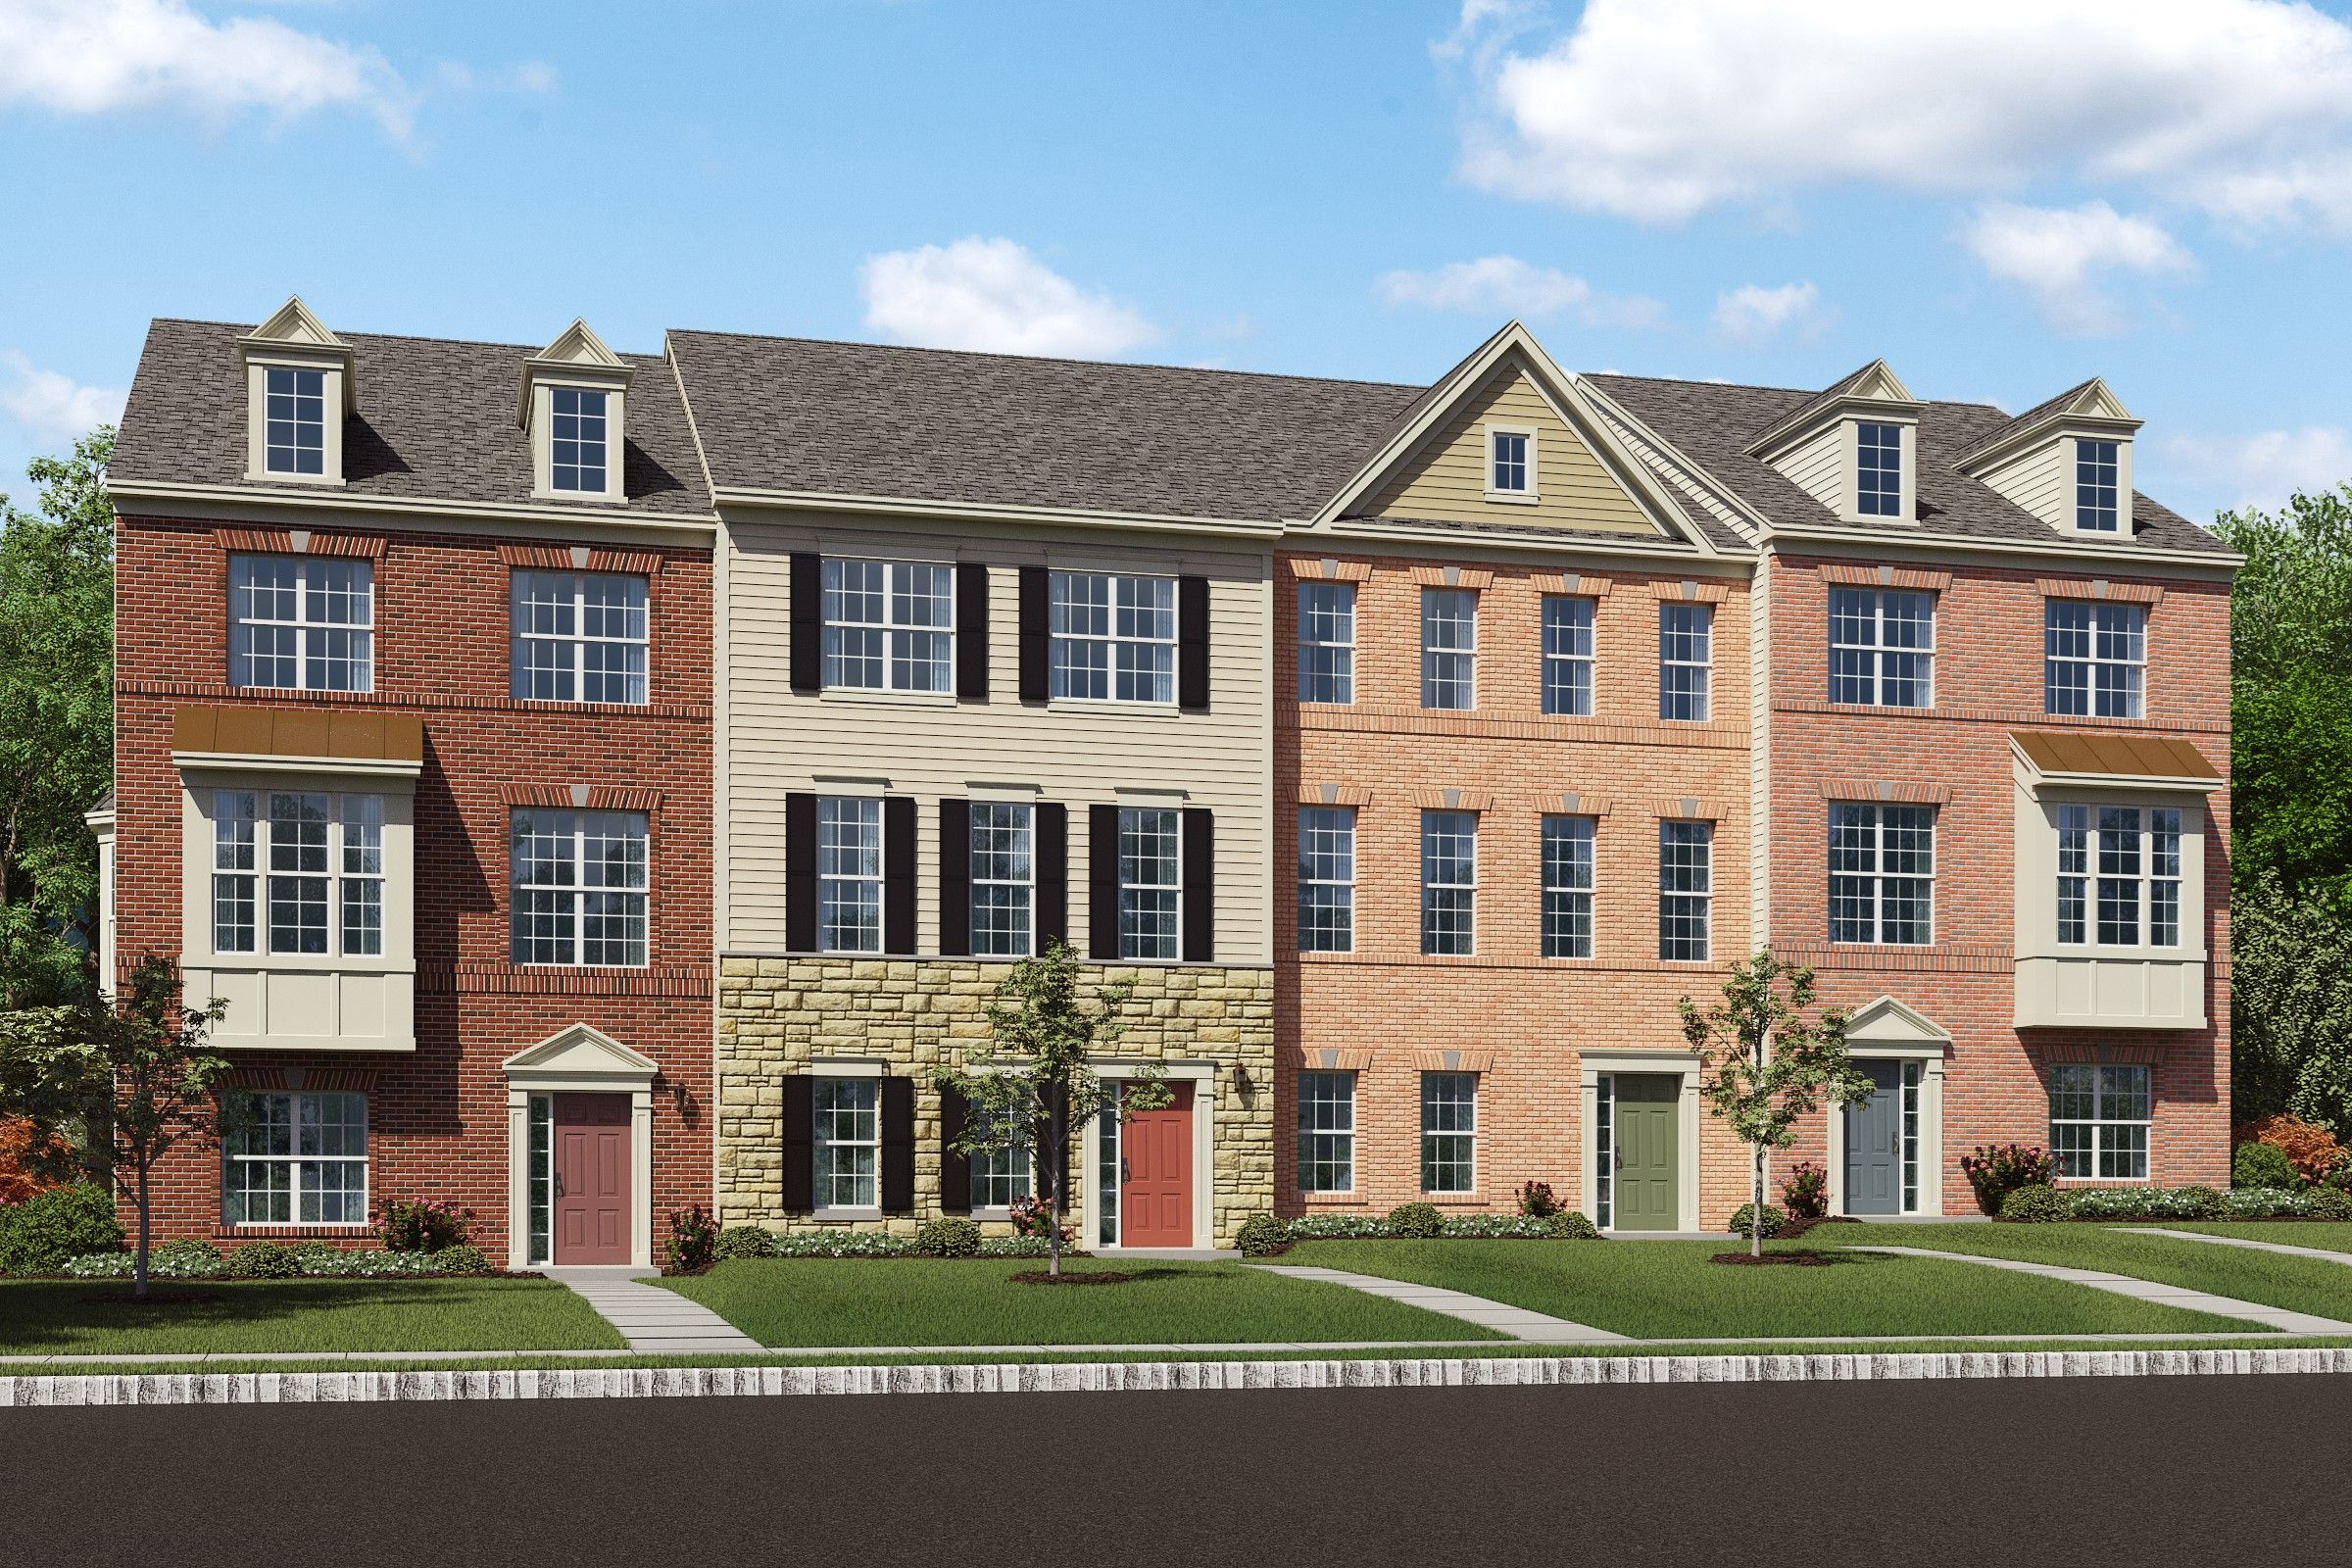 Multi Family for Sale at Madison 2122 Garden Grove Lane, Homesite 35d Mitchellville, Maryland 20721 United States